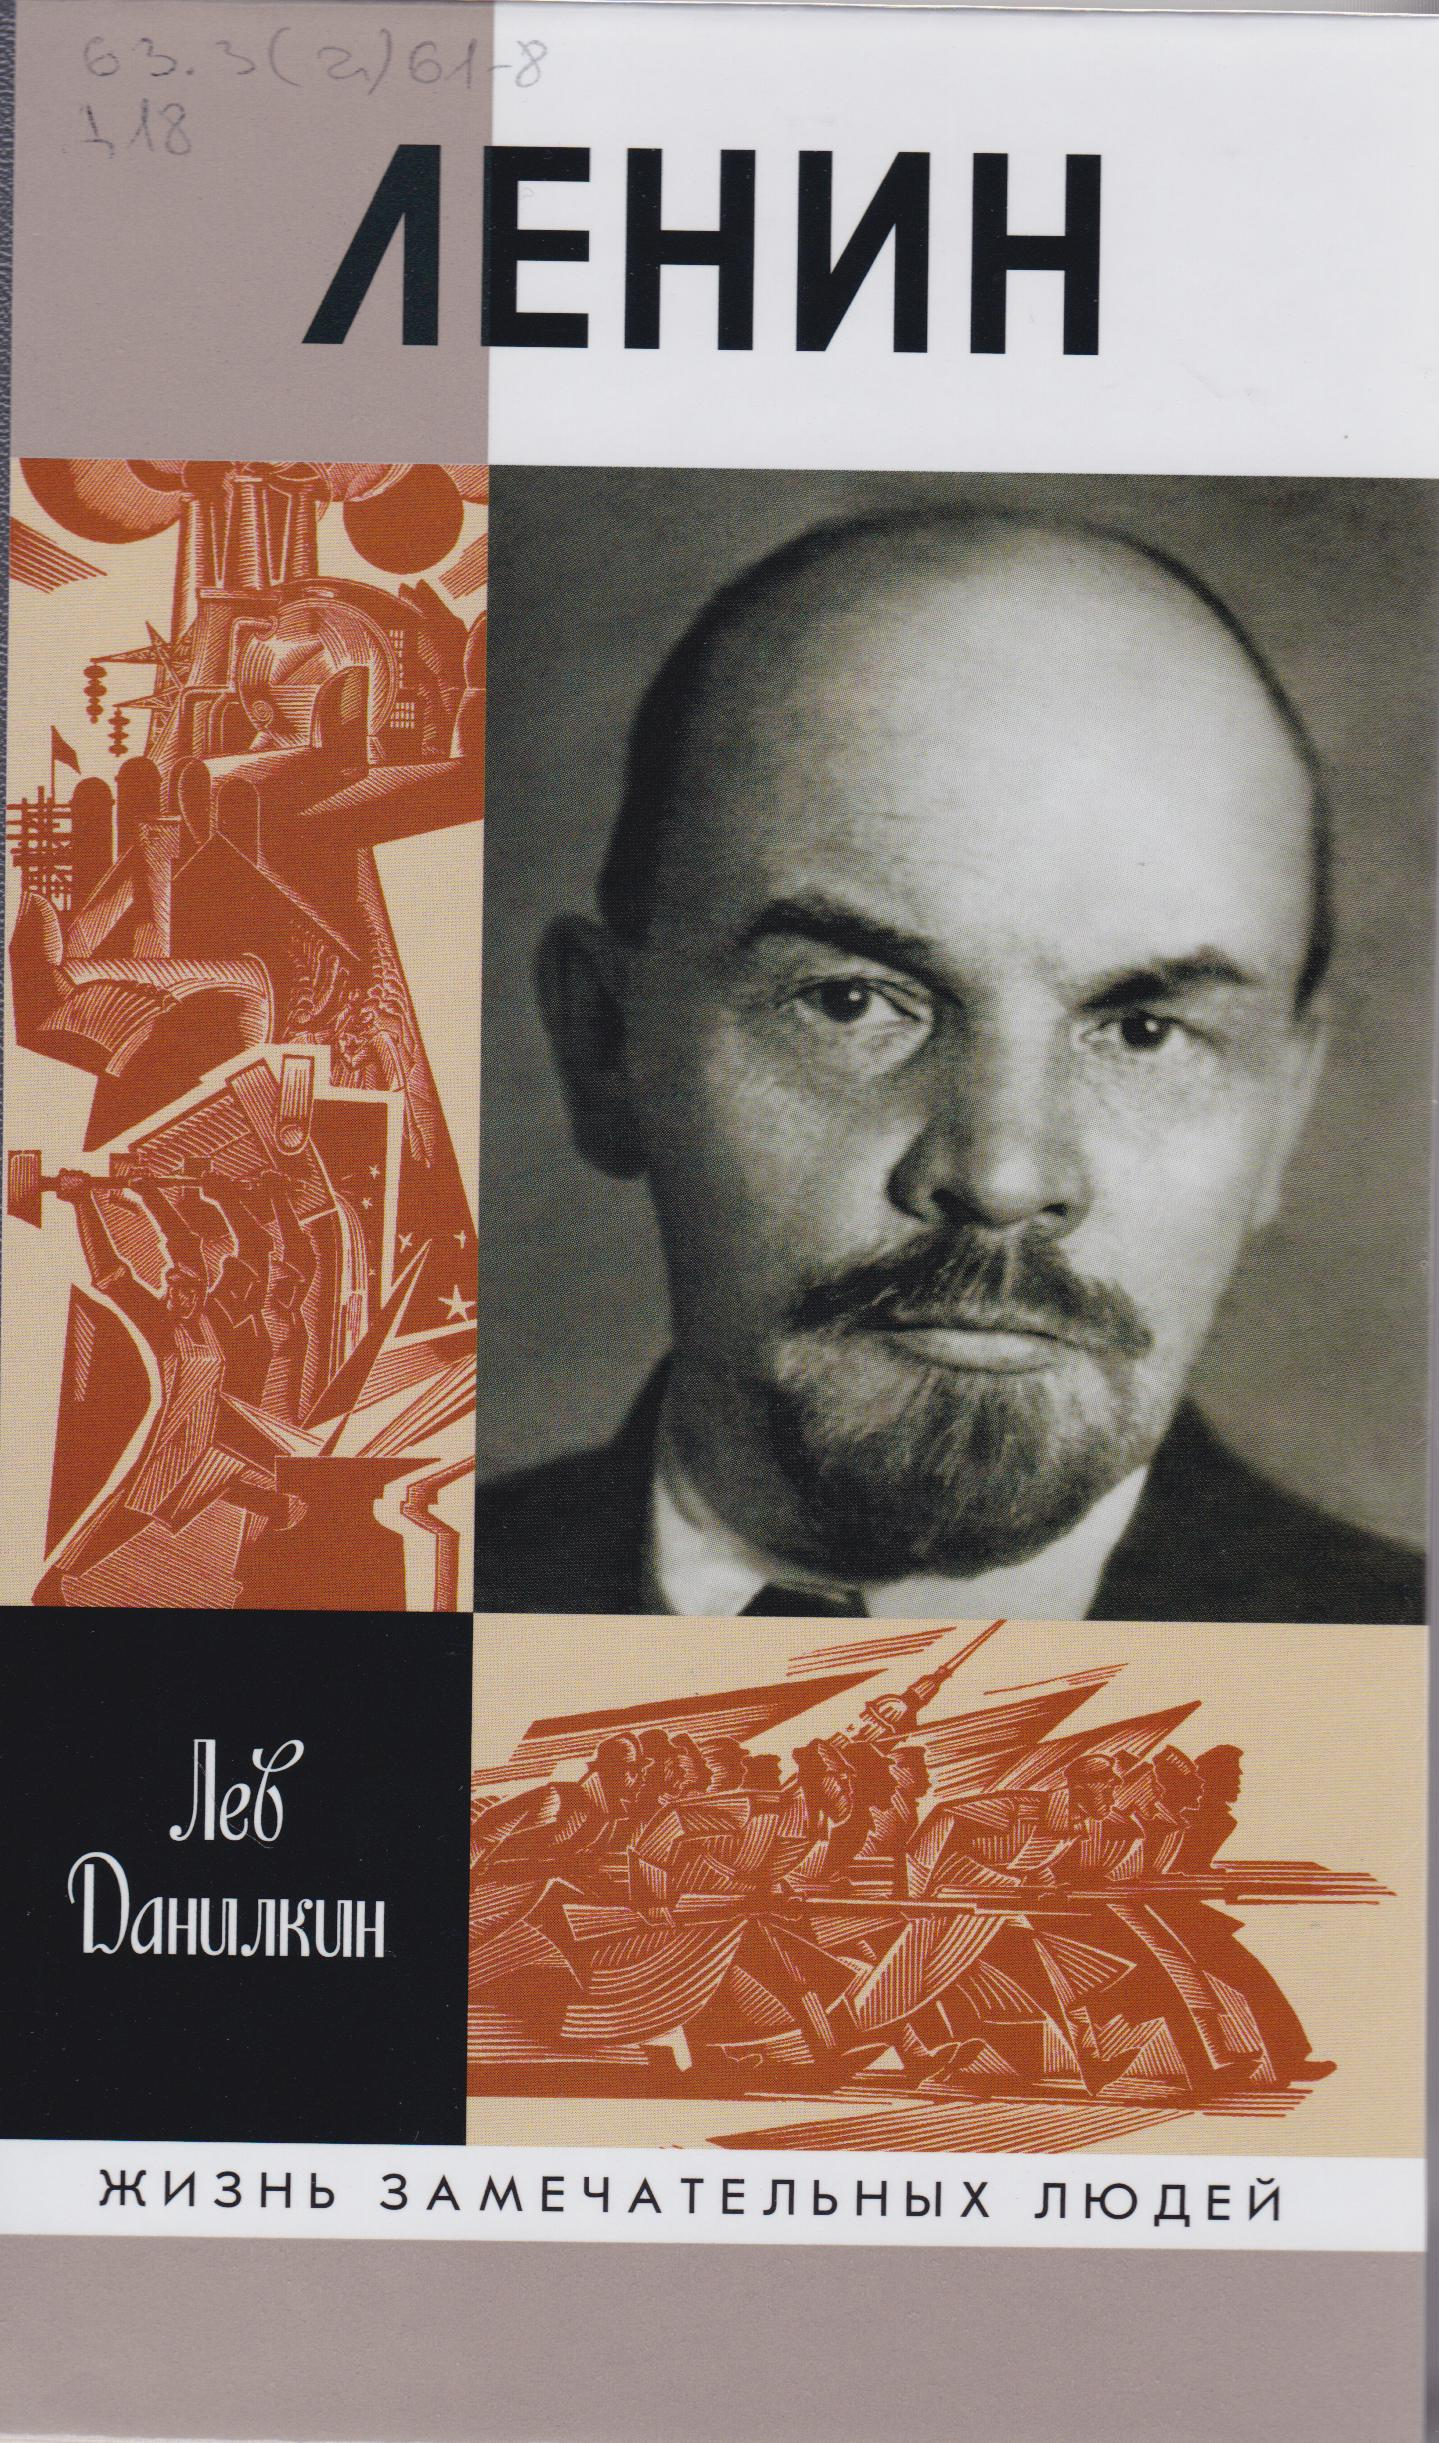 /Files/image/lenin_3.jpg